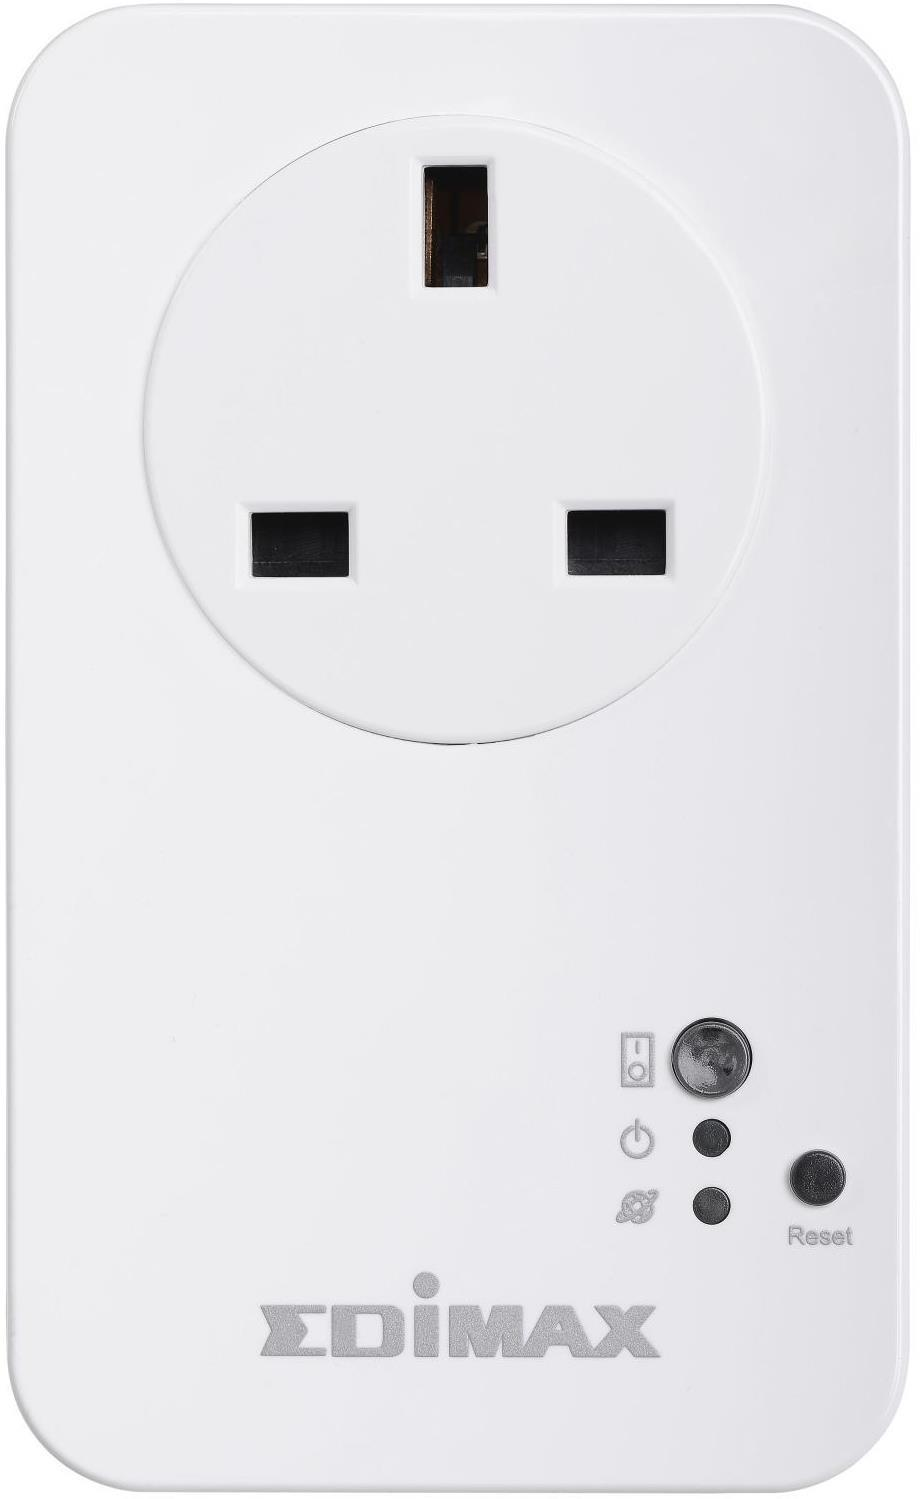 Edimax Intelligent Home Control Plug, Easily switch power on/off via iPhone/iPad/Android!